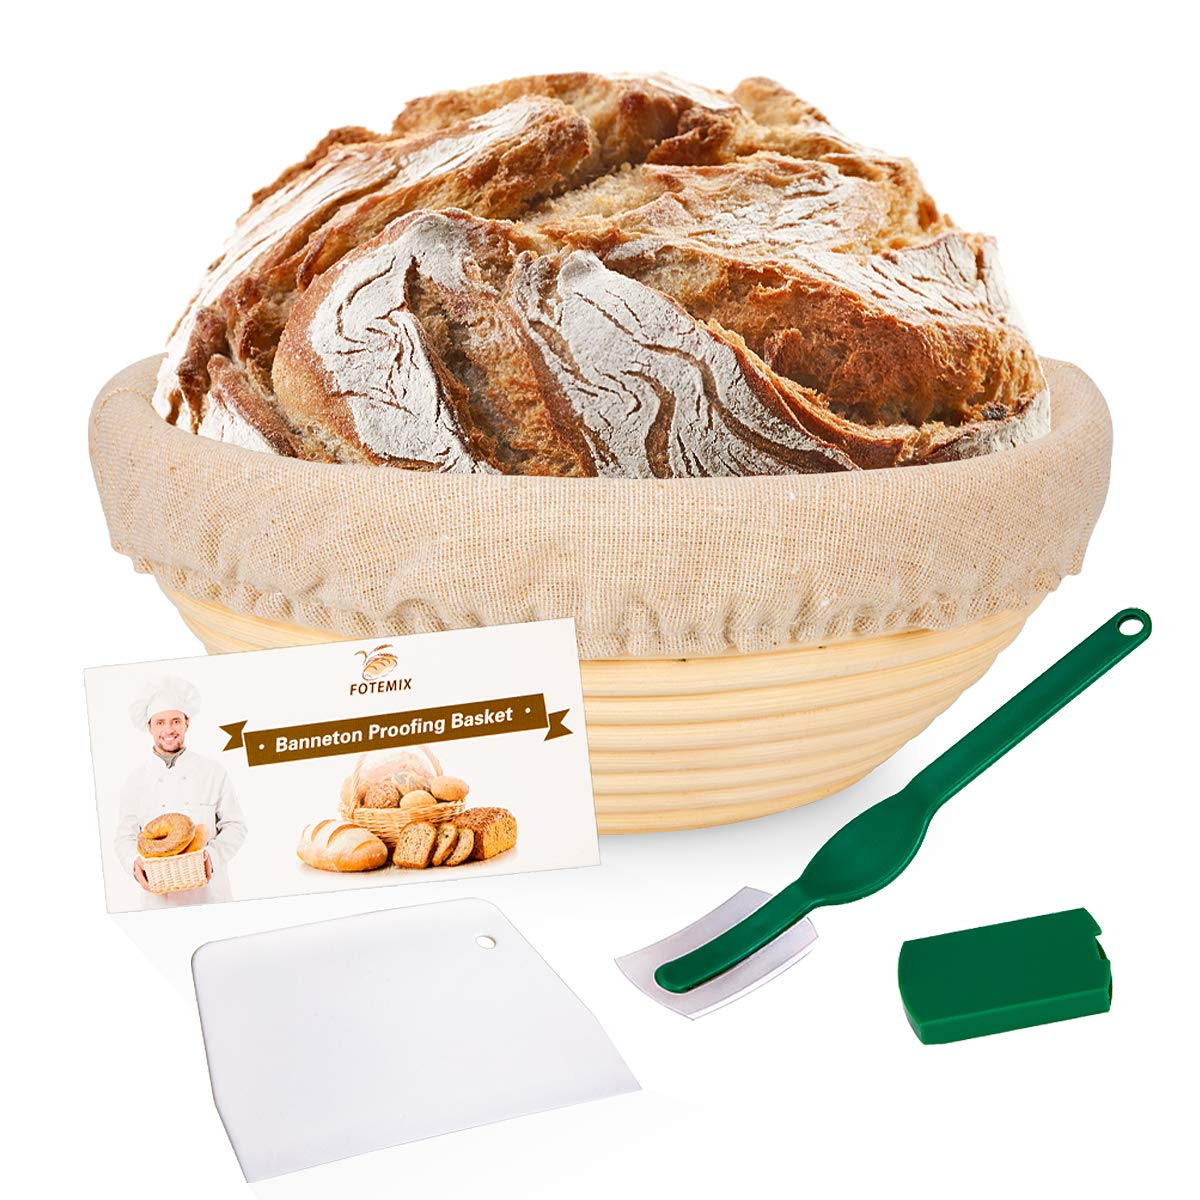 Round Bread Proofing Basket 8.5inch Banneton Proving Basket Natural Rattan Sourdough Proving Basket for Professional Home Bakers (with Cloth Liner, Dough Scraper, Bread Lame, Starter Recipe Set)